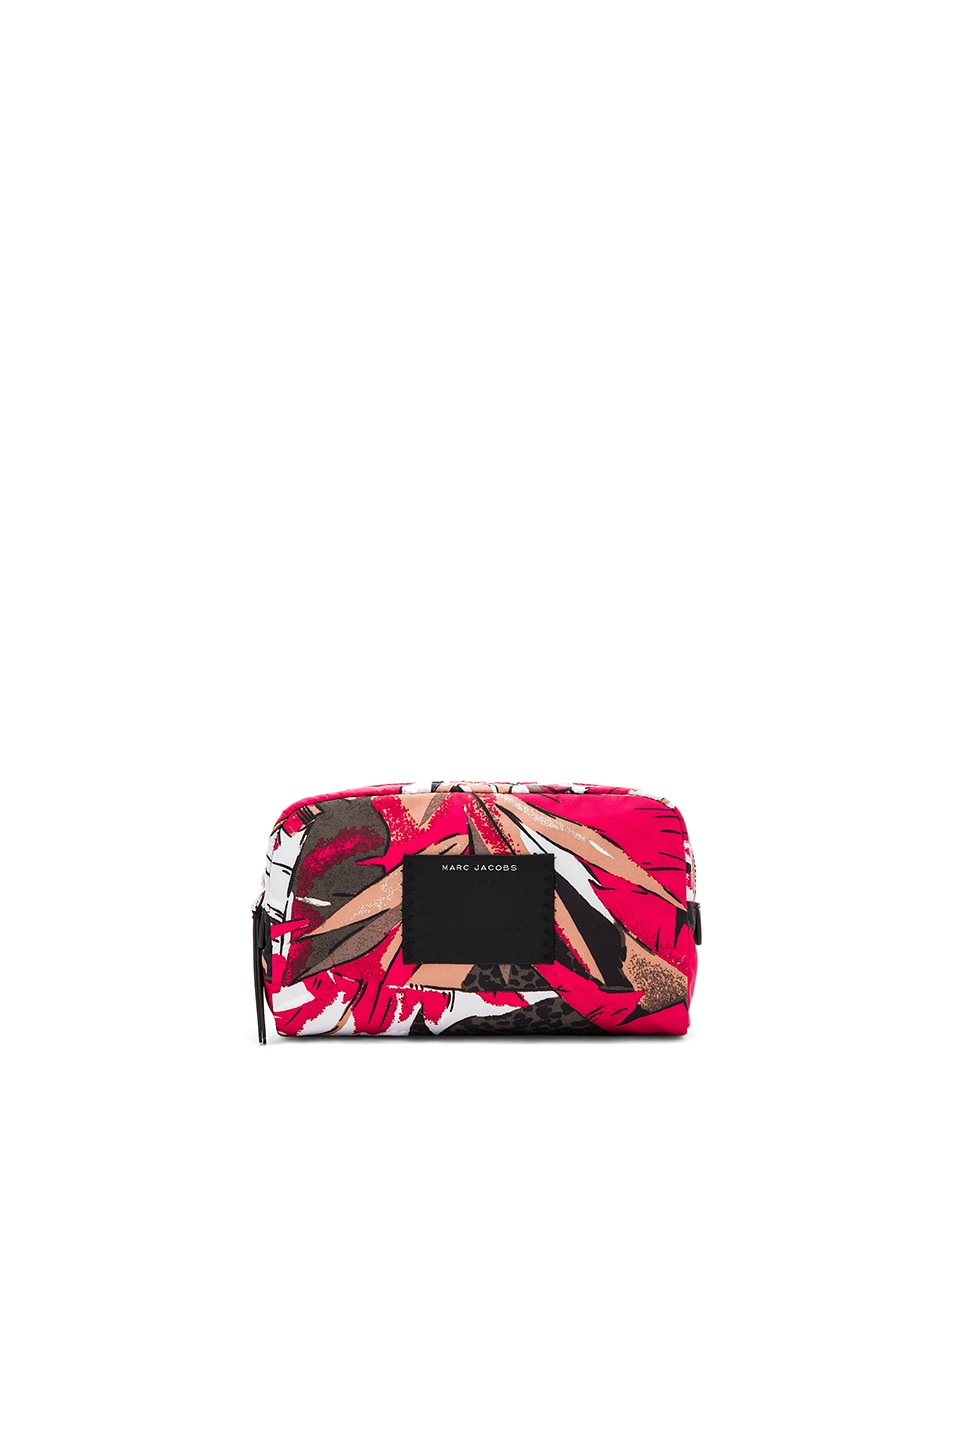 Marc Jacobs B.Y.O.T Palm Large Cosmetic Bag in Pink Multi